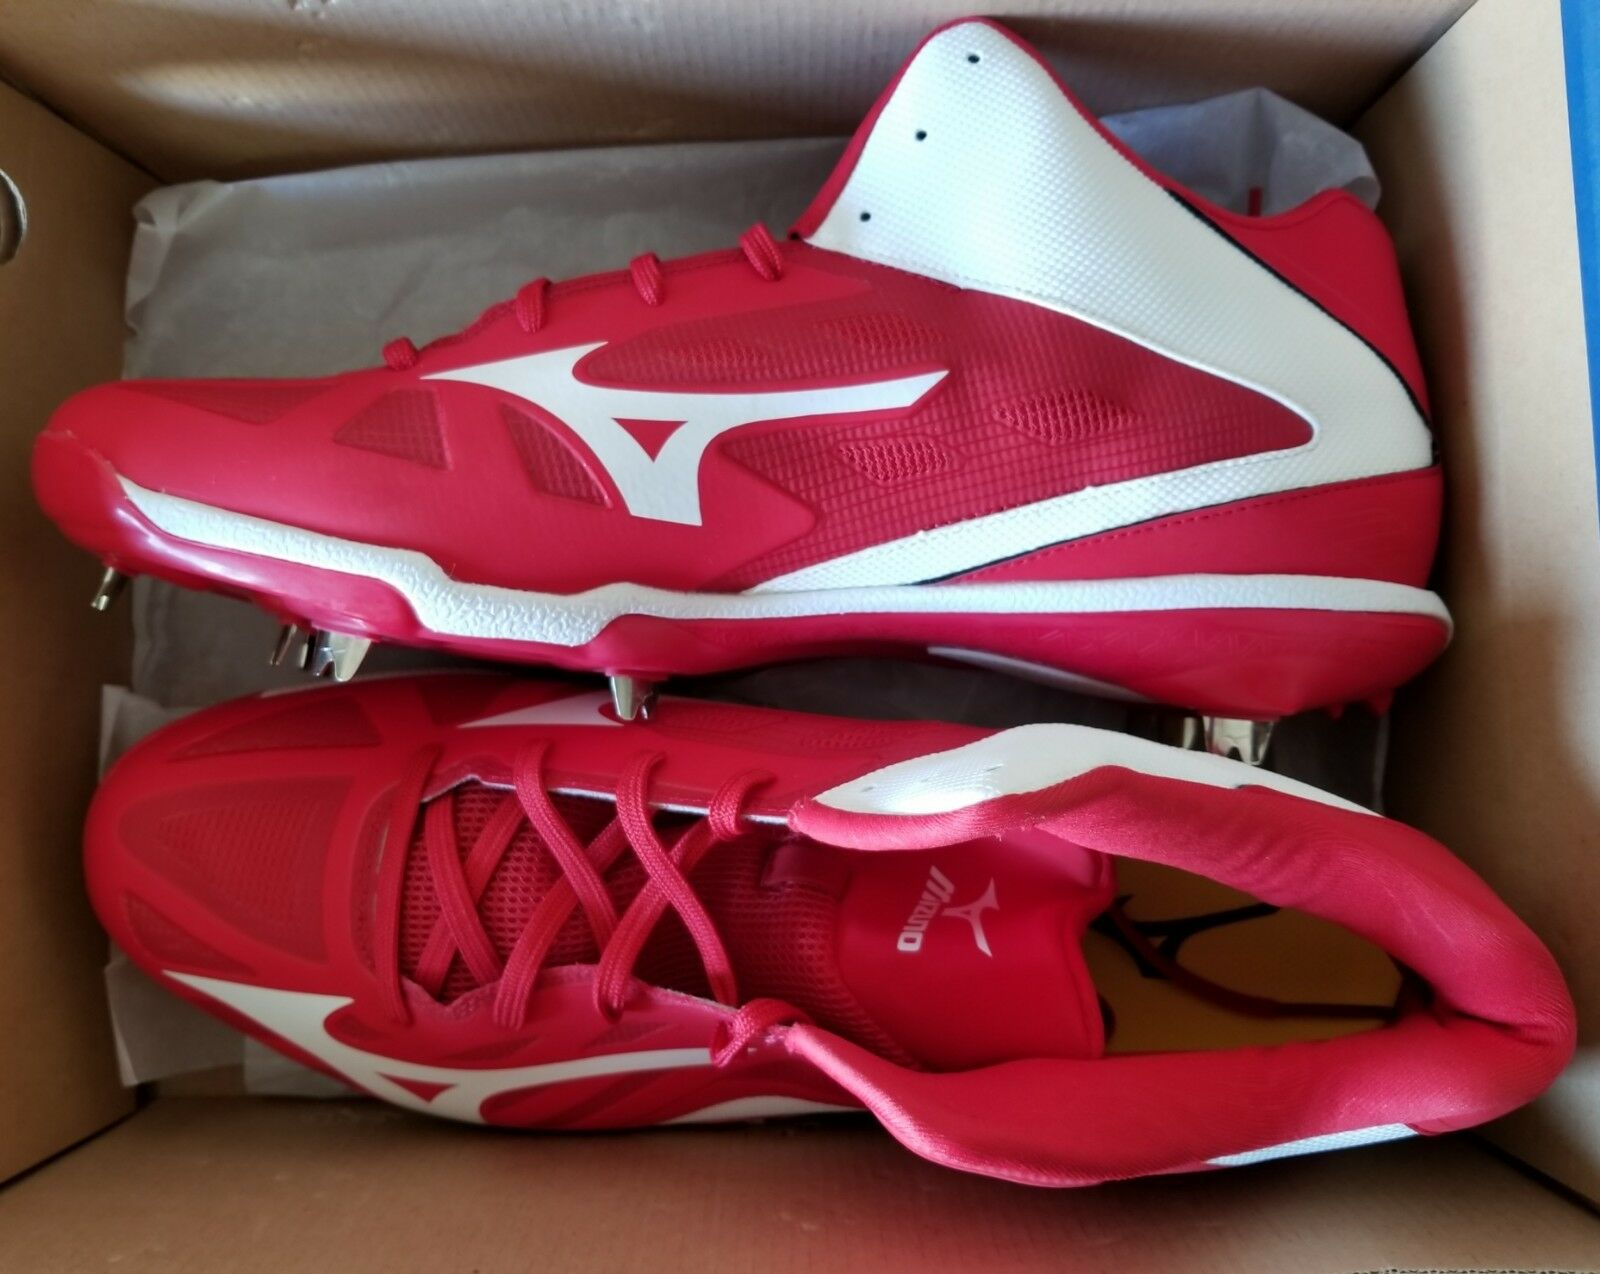 MIZUNO BASEBALL HEIST IQ MID 320500 BASEBALL MIZUNO METAL CLEATS SIZE 16 - ROT - NEW WITH BOX 8060af